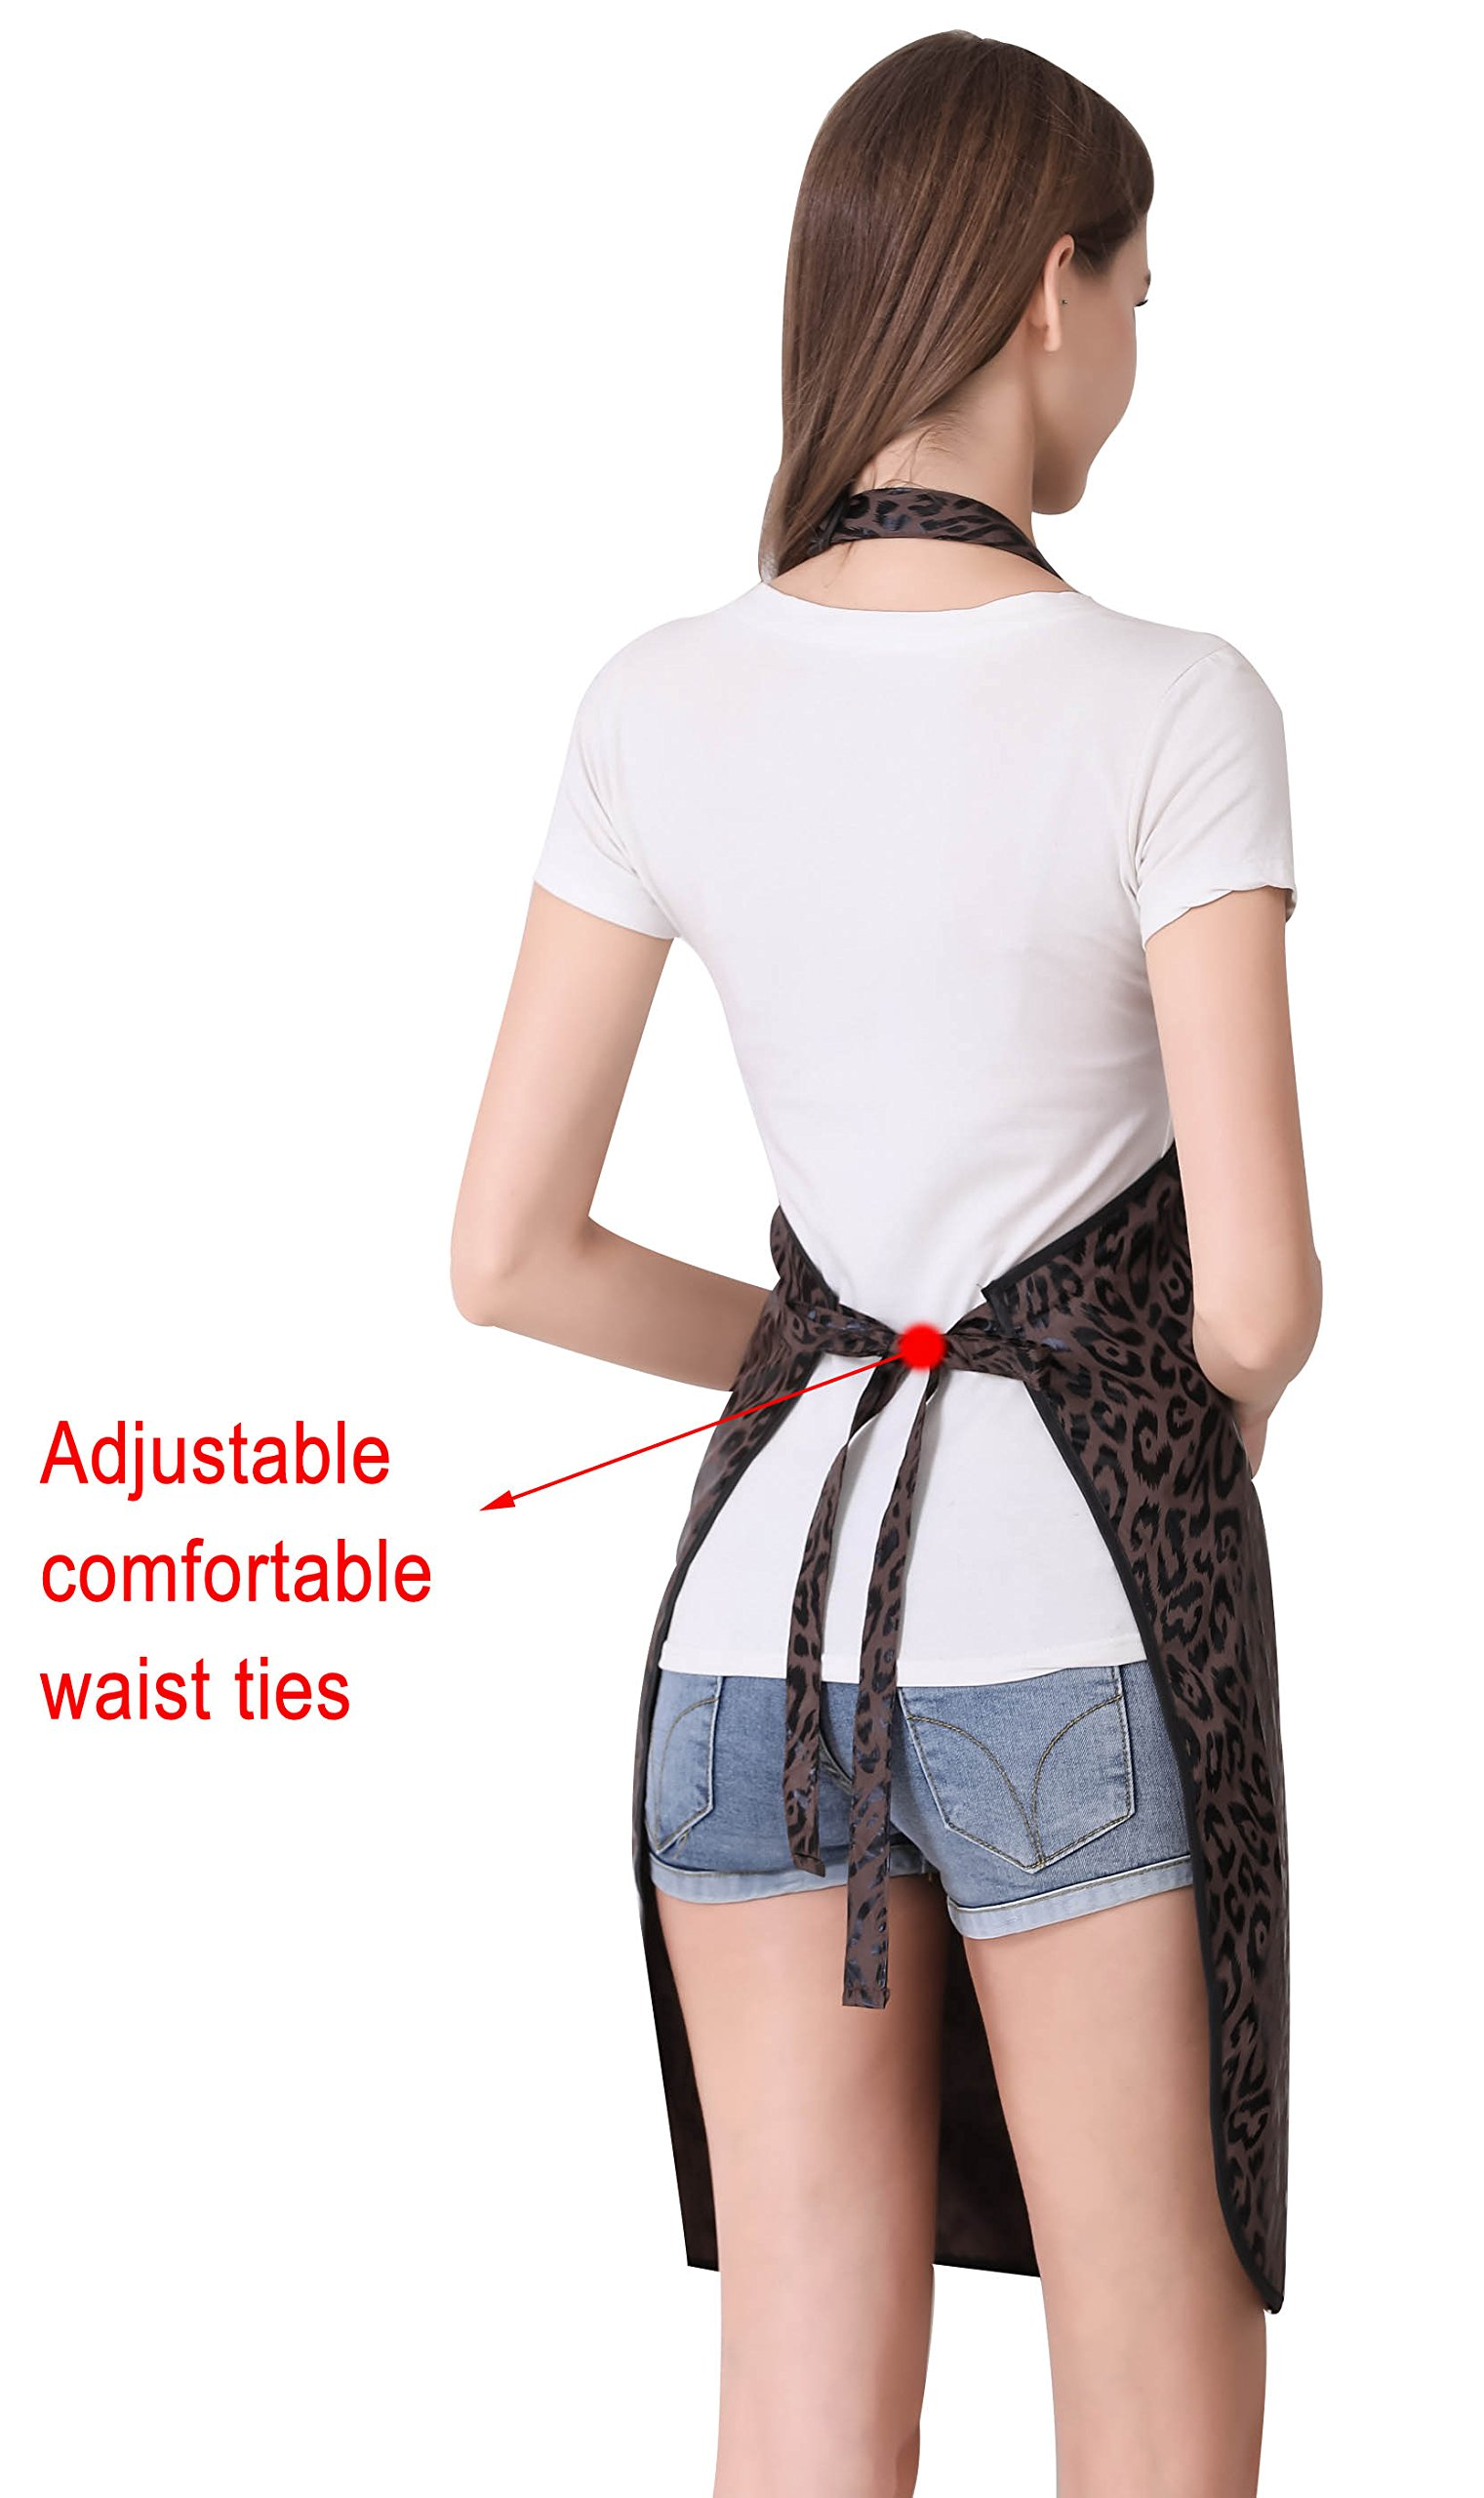 Hair Stylist Apron for Salon Hairdresser, Barber Haircut Styling Apron With Pockets-Leopard Print by Perfehair (Image #4)